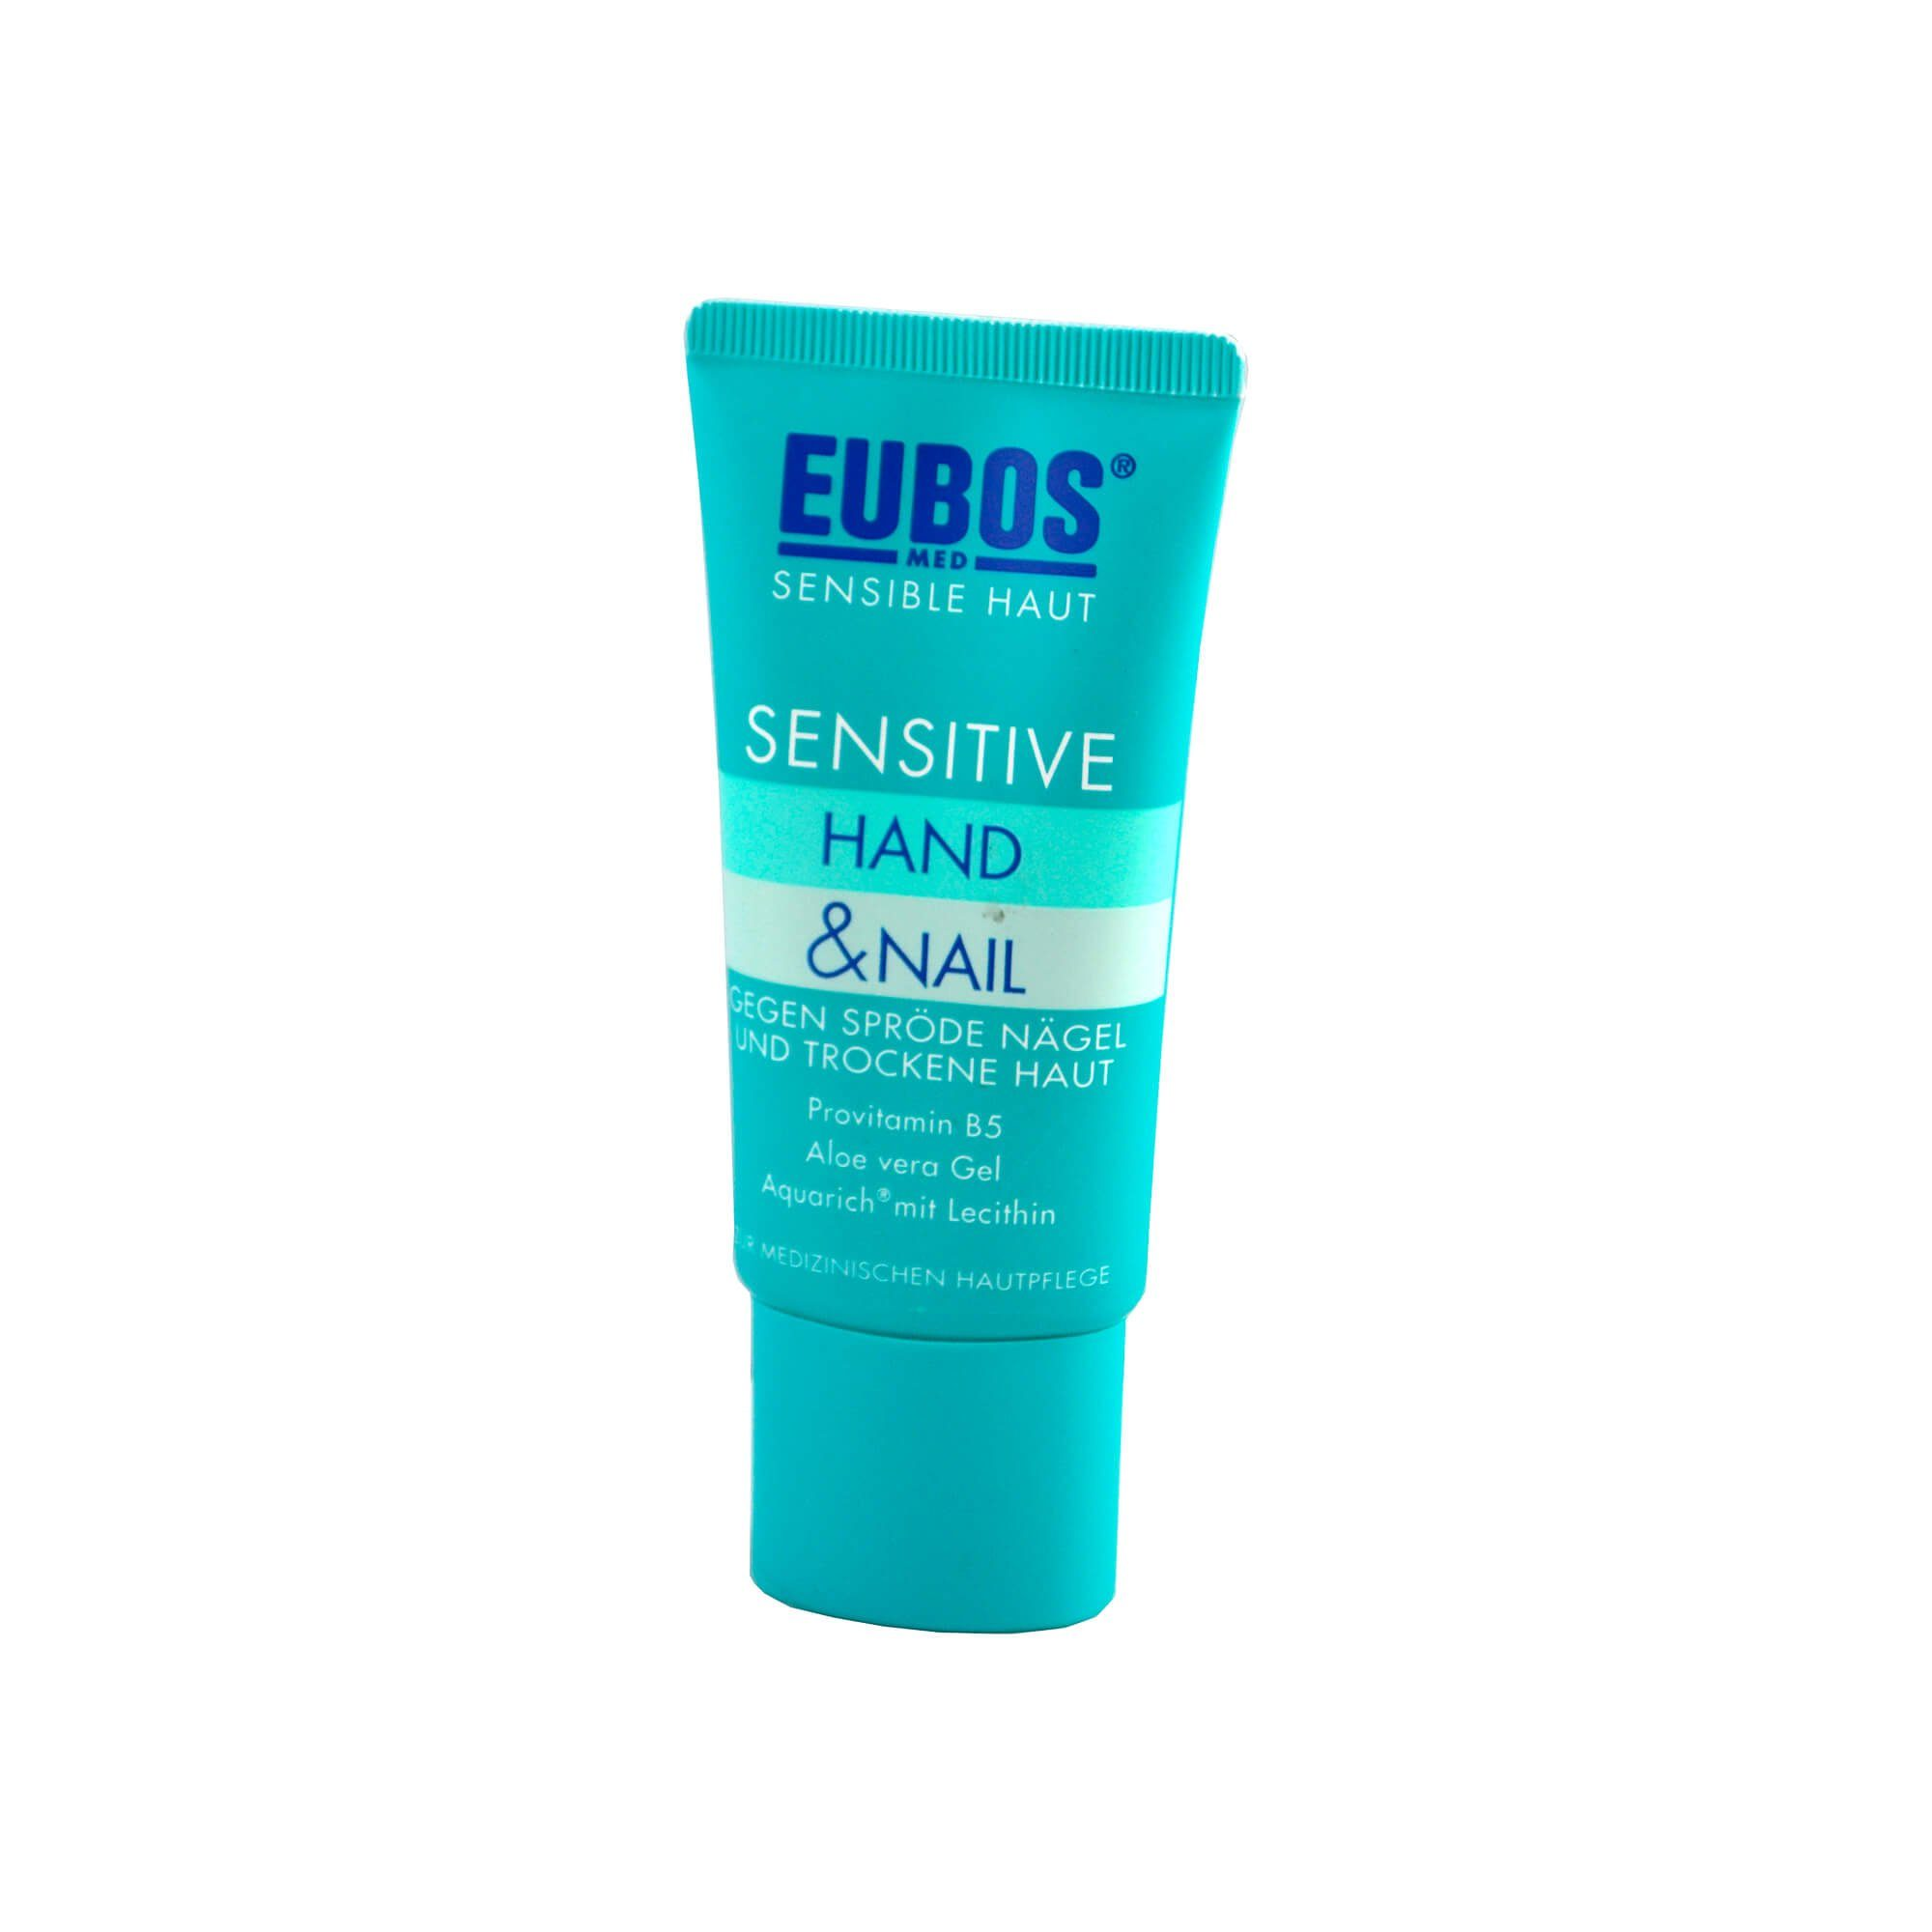 Eubos sensitive Hand & Nail Creme sensible Haut, 50 ml